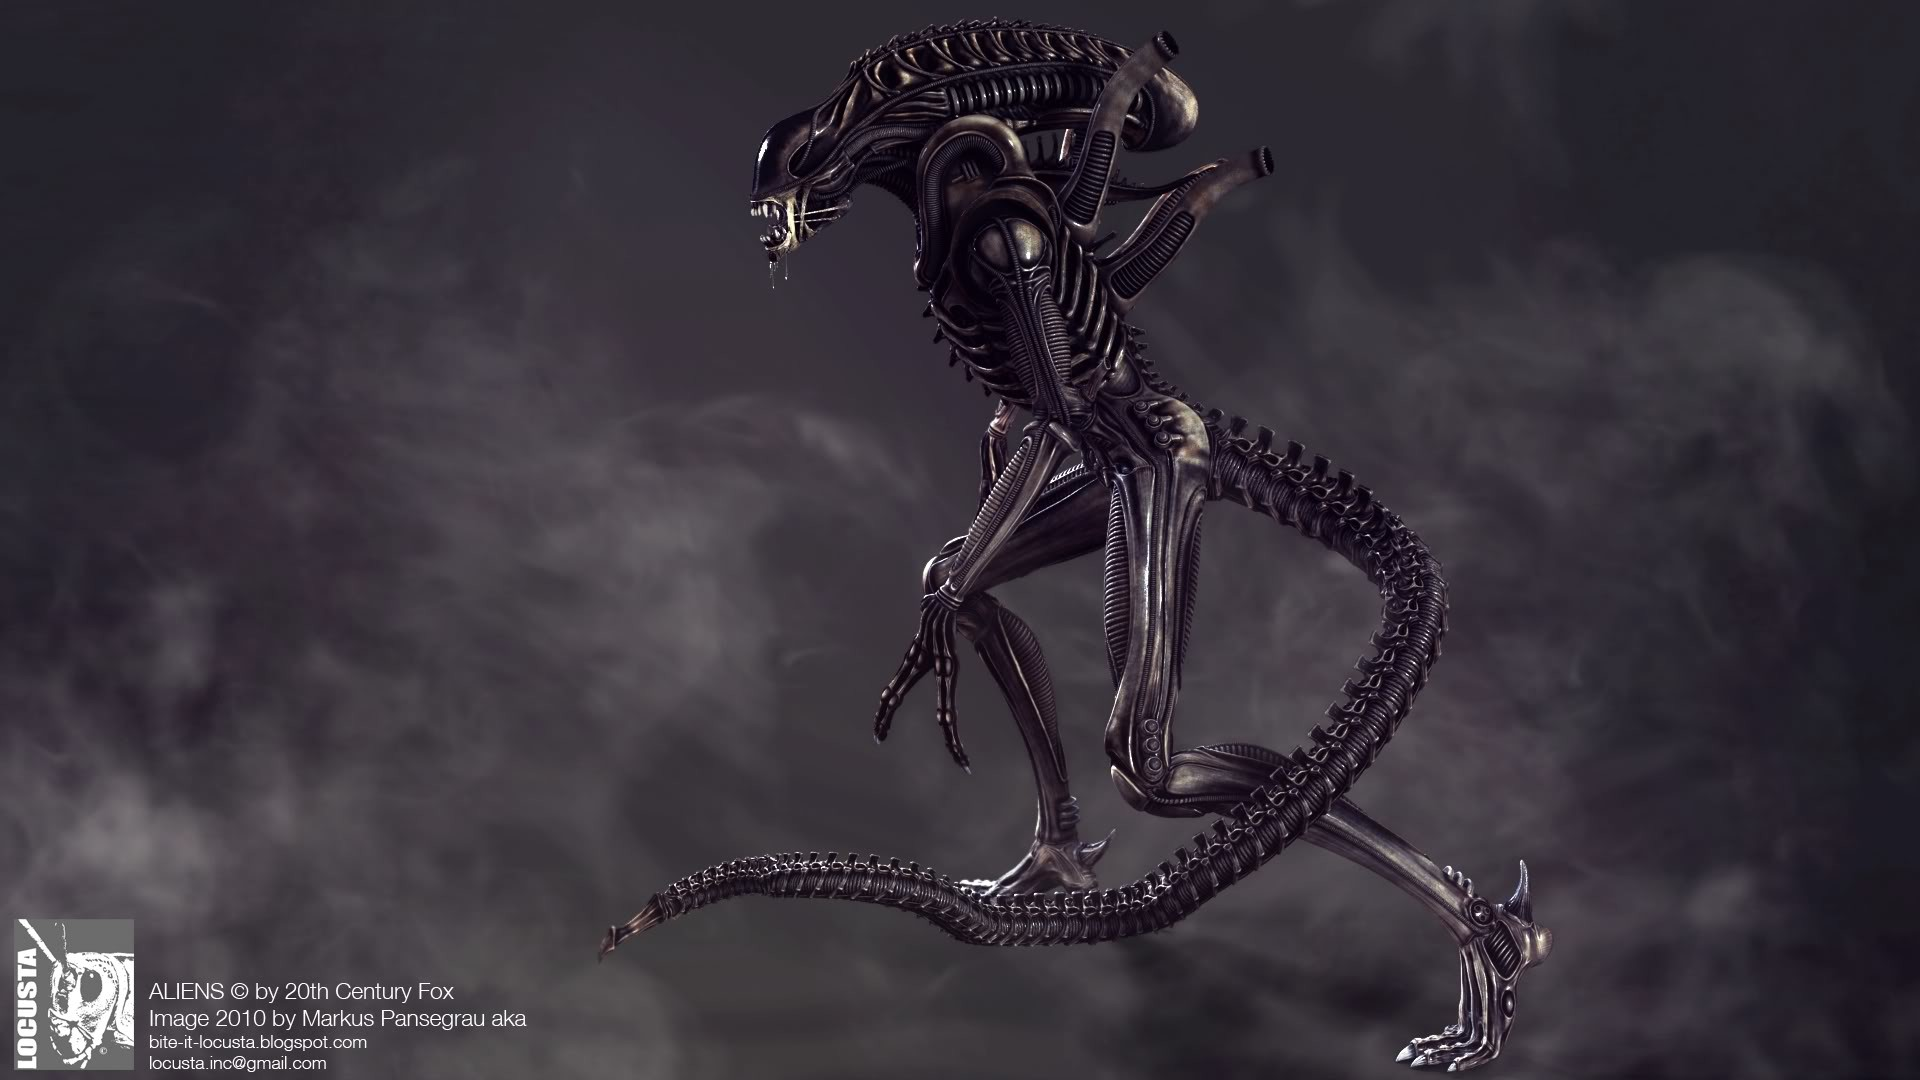 1920x1080 alien-wallpaper-70.jpg (1920×1080)